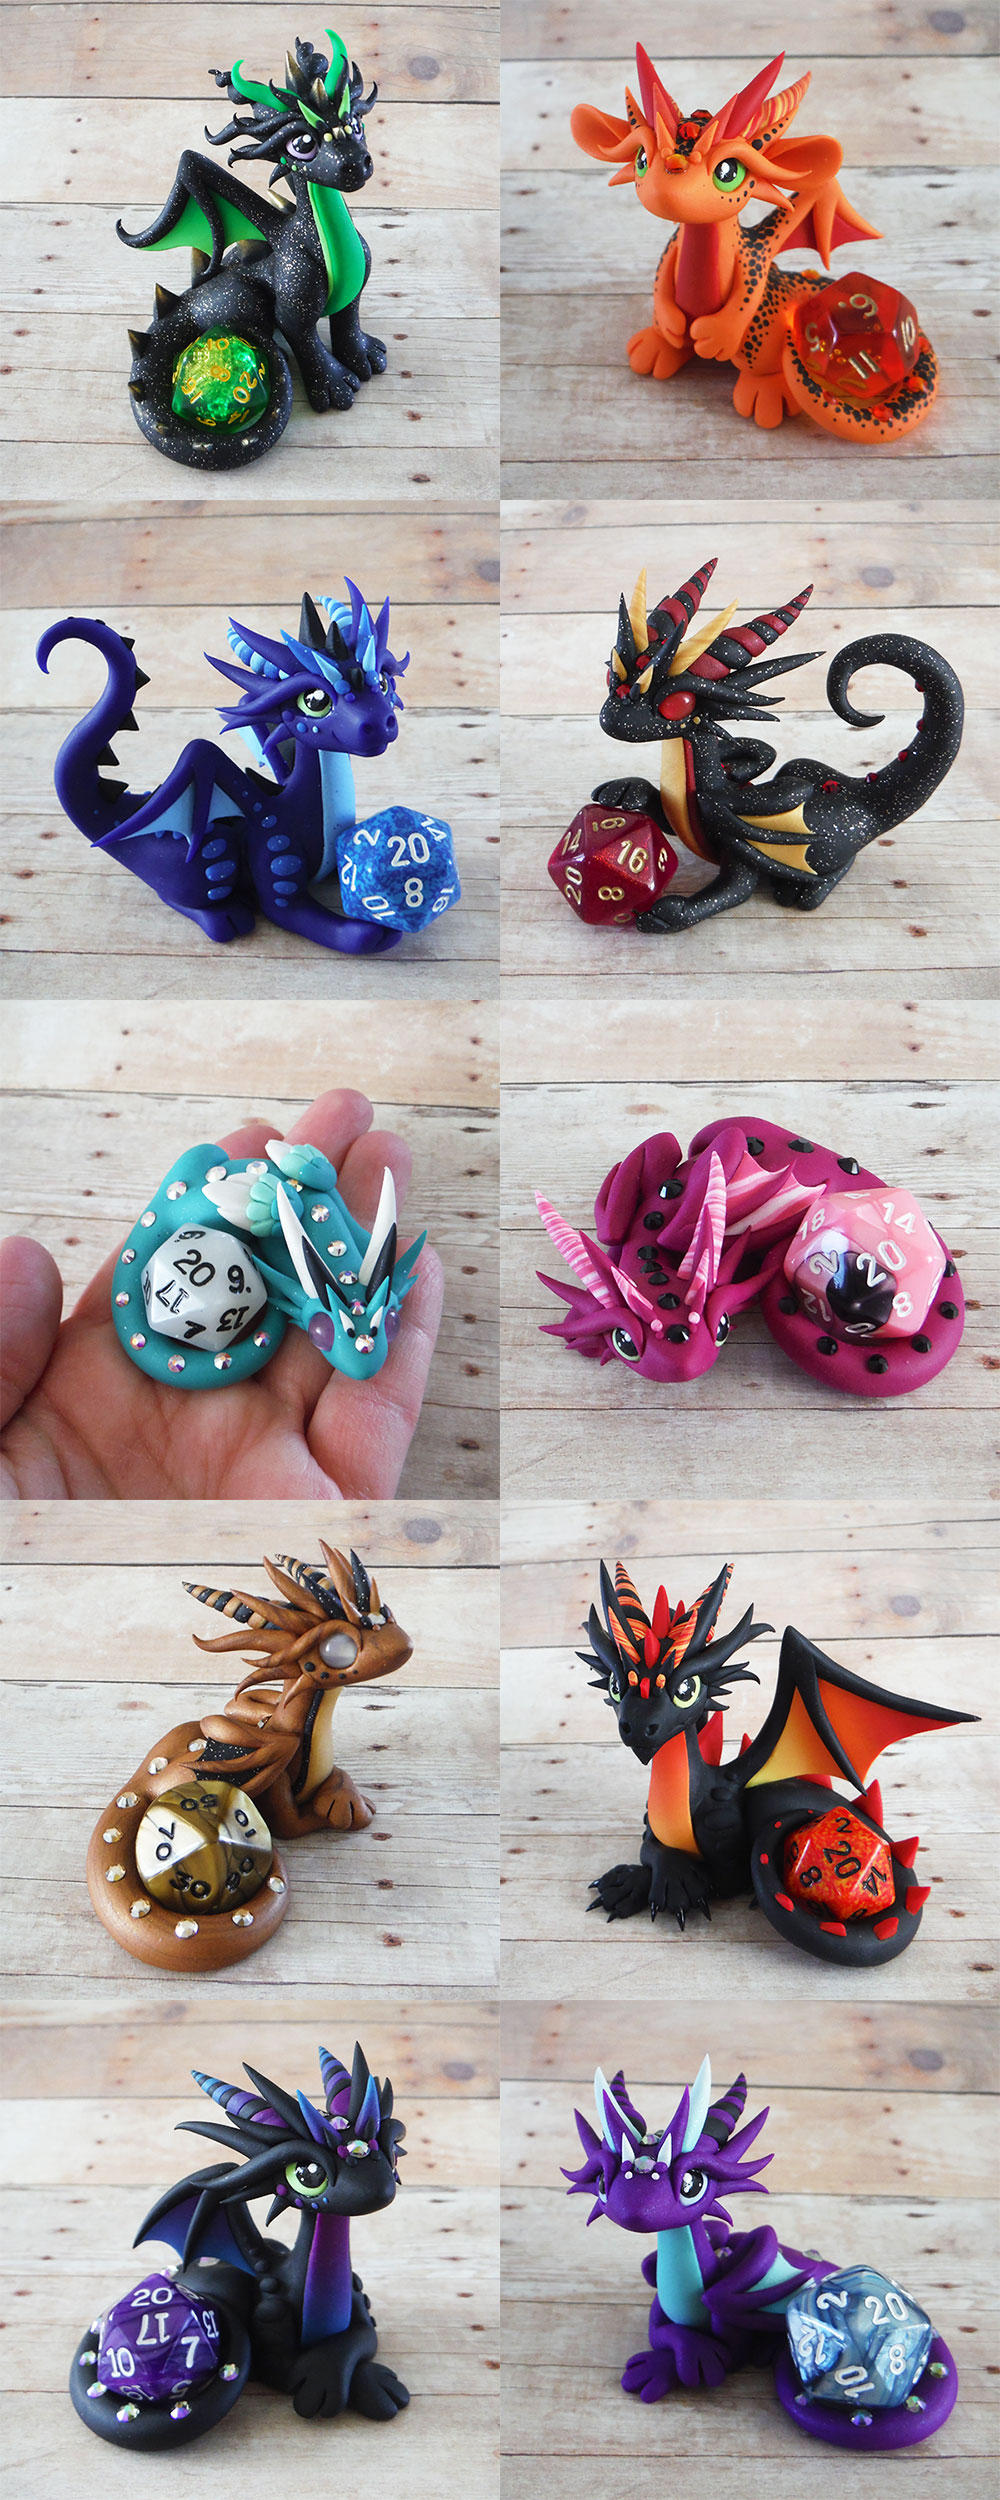 Dice Dragon Sale March 27th by DragonsAndBeasties